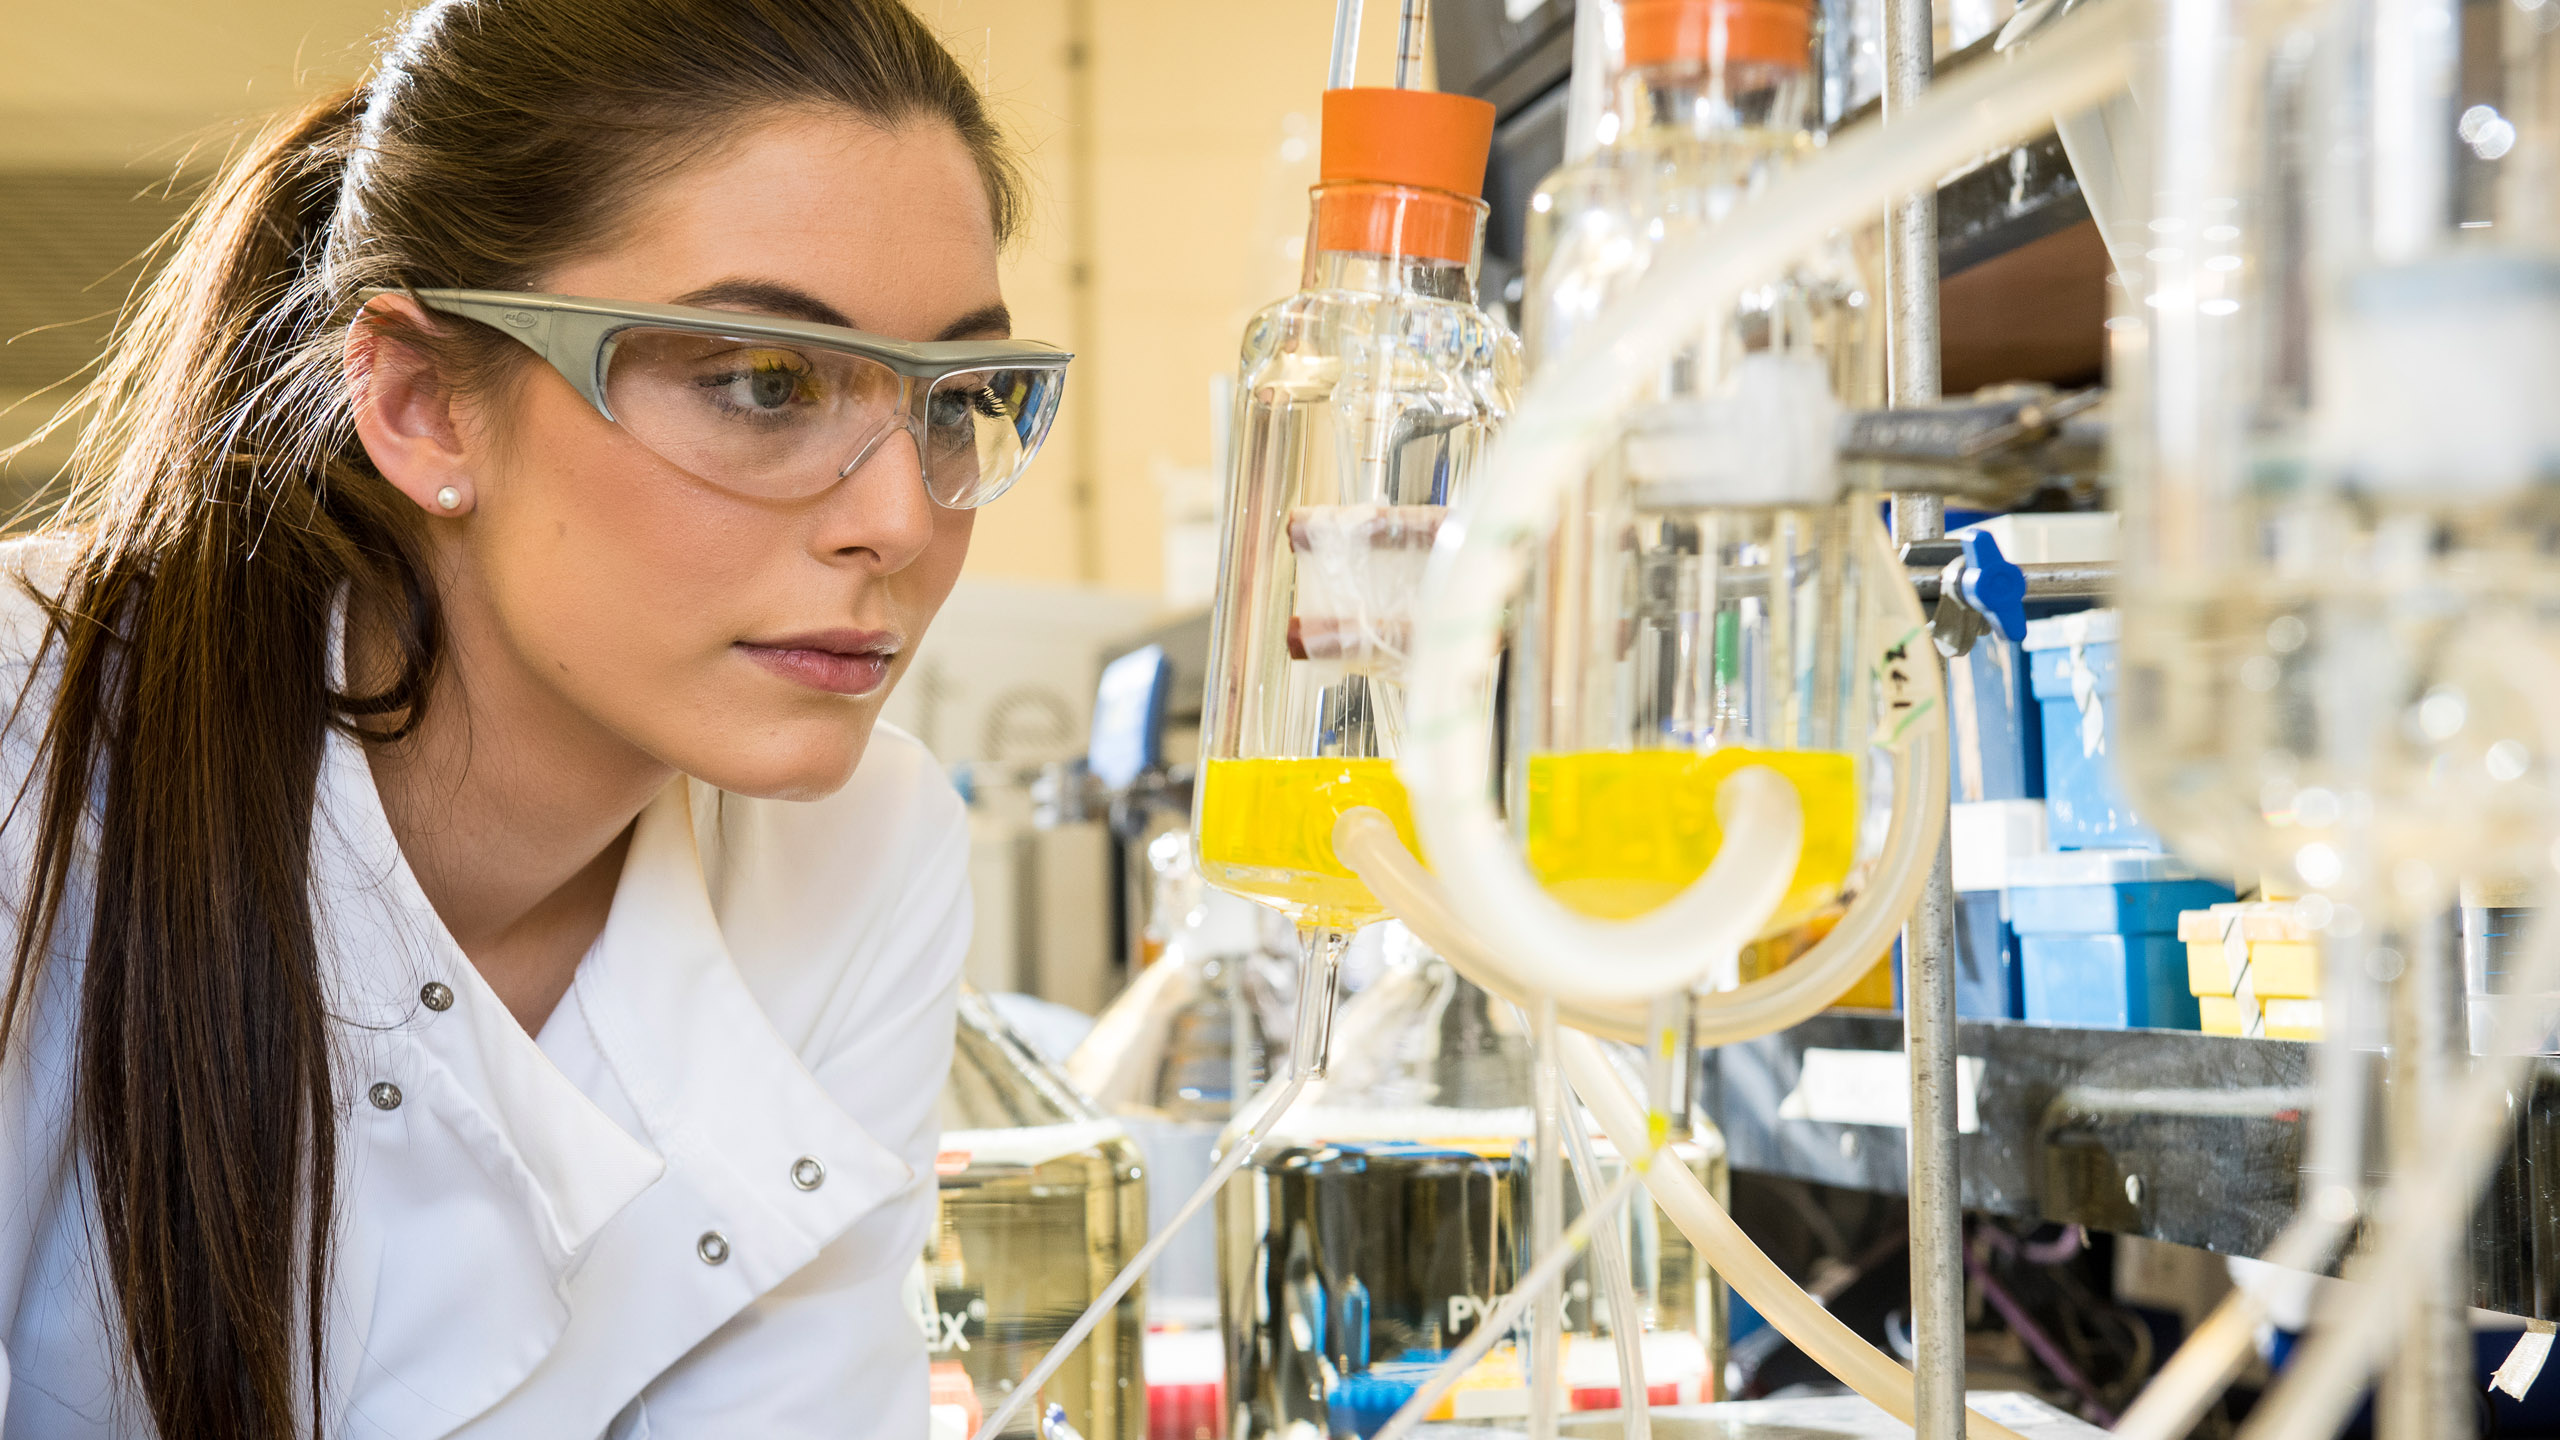 A female student with long dark hair and protective goggles in a drug discovery laboratory filled with glass vials and plastic pipes.